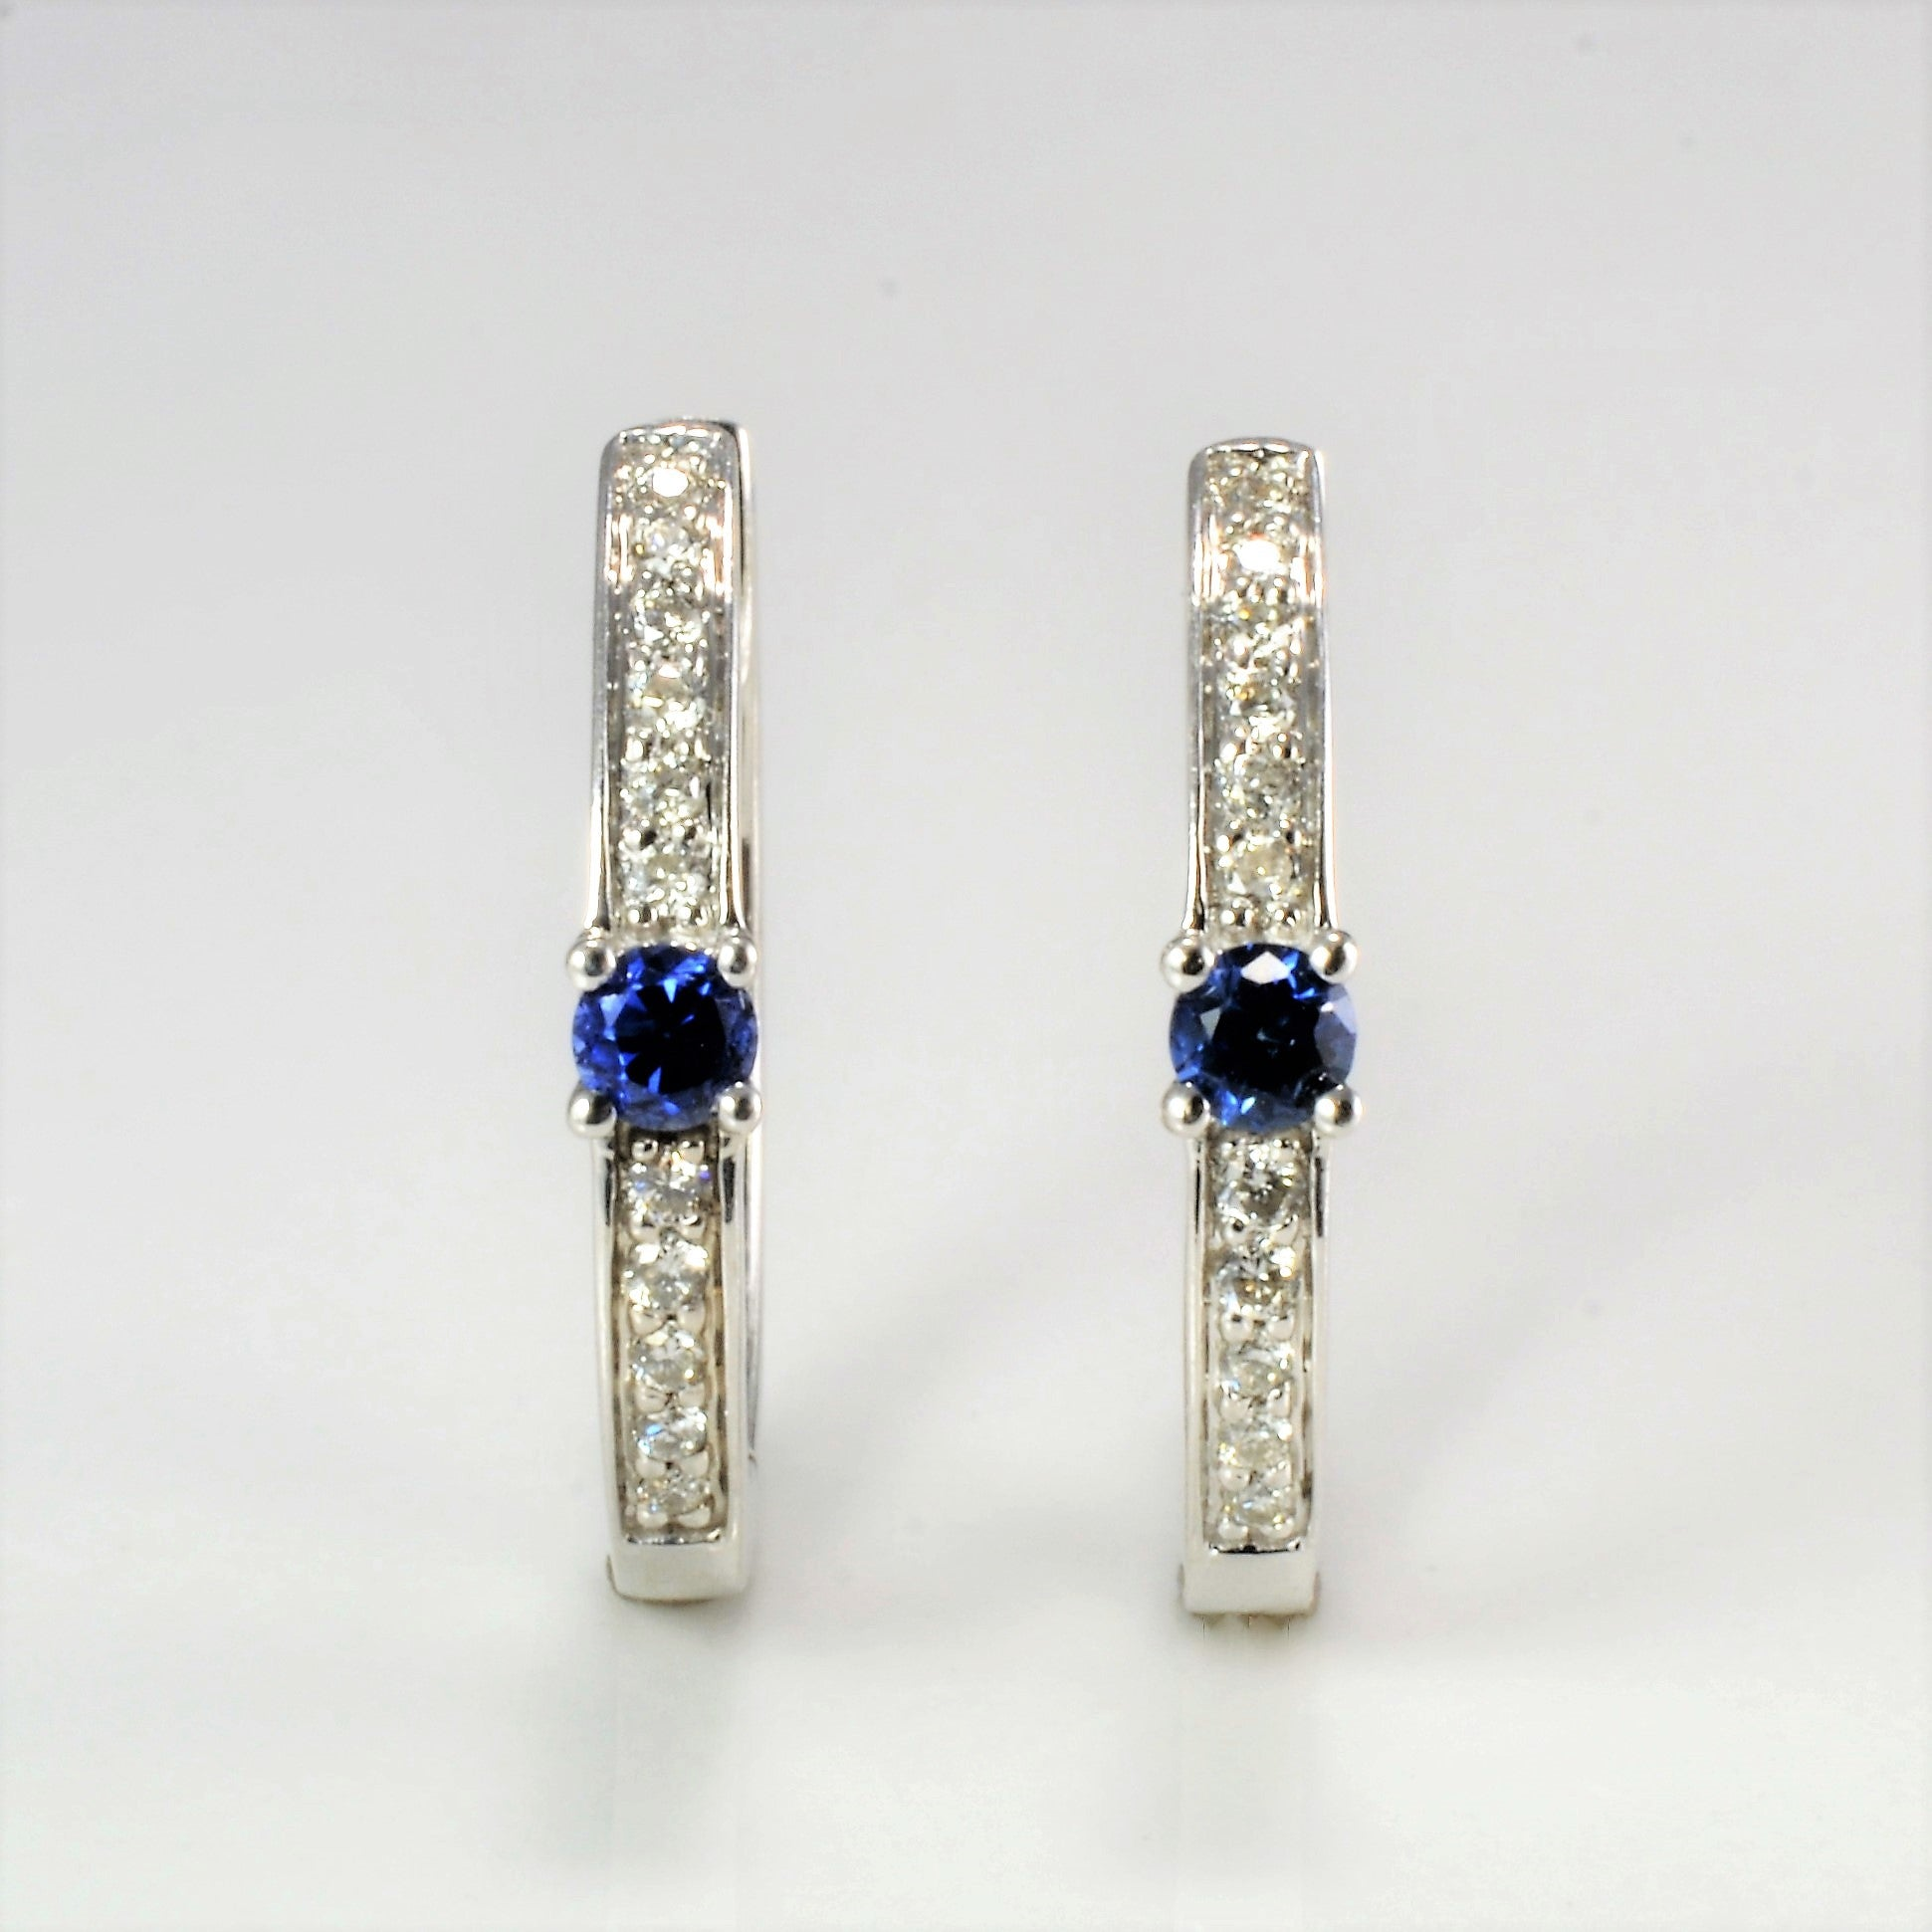 Diamond & Sapphire Huggie Earrings | 0.11 ctw |